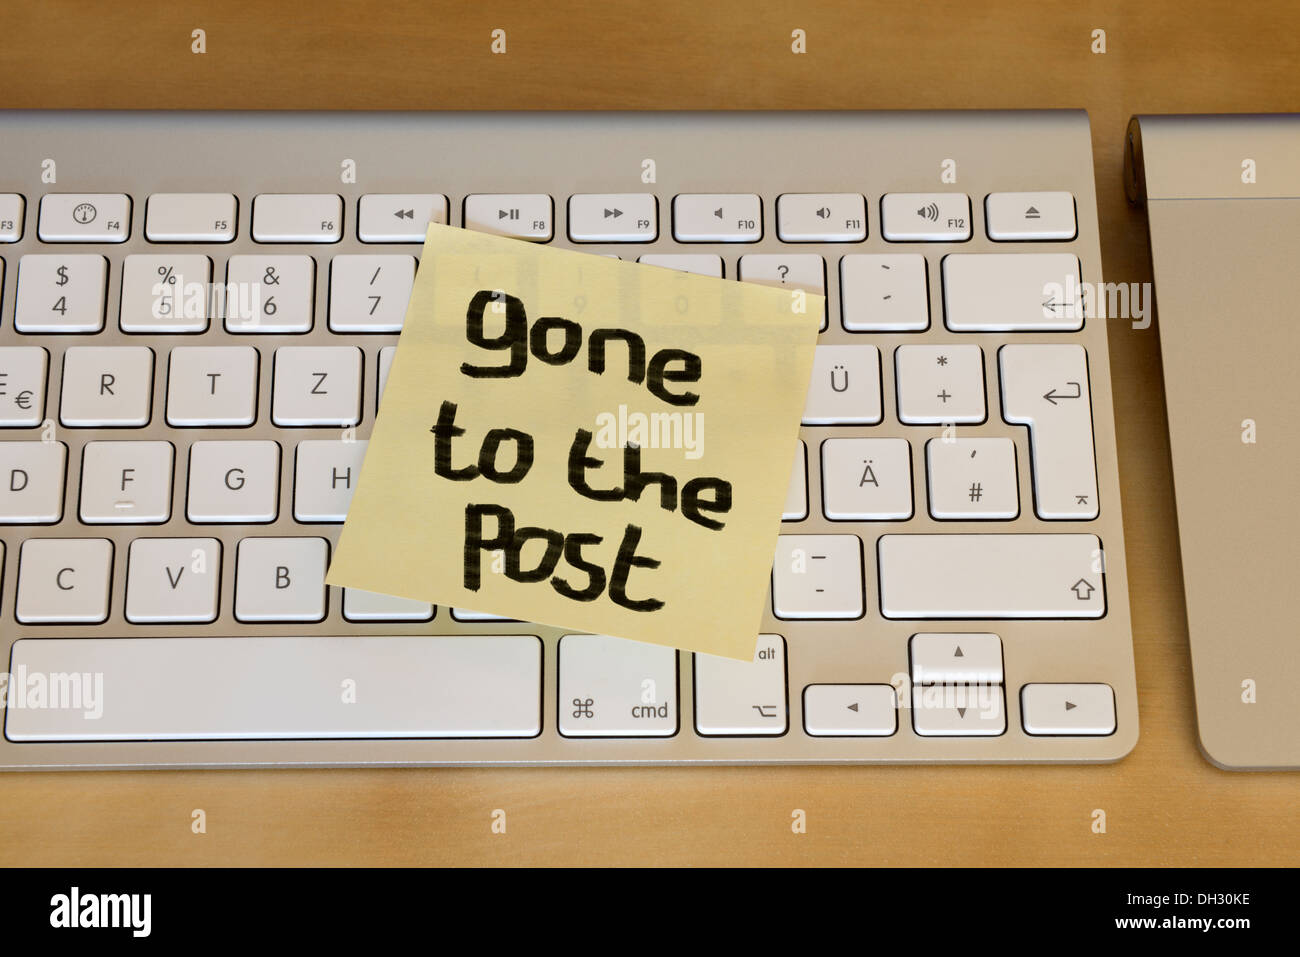 'Gone to the post' post-it note stuck on computer keyboard - Stock Image